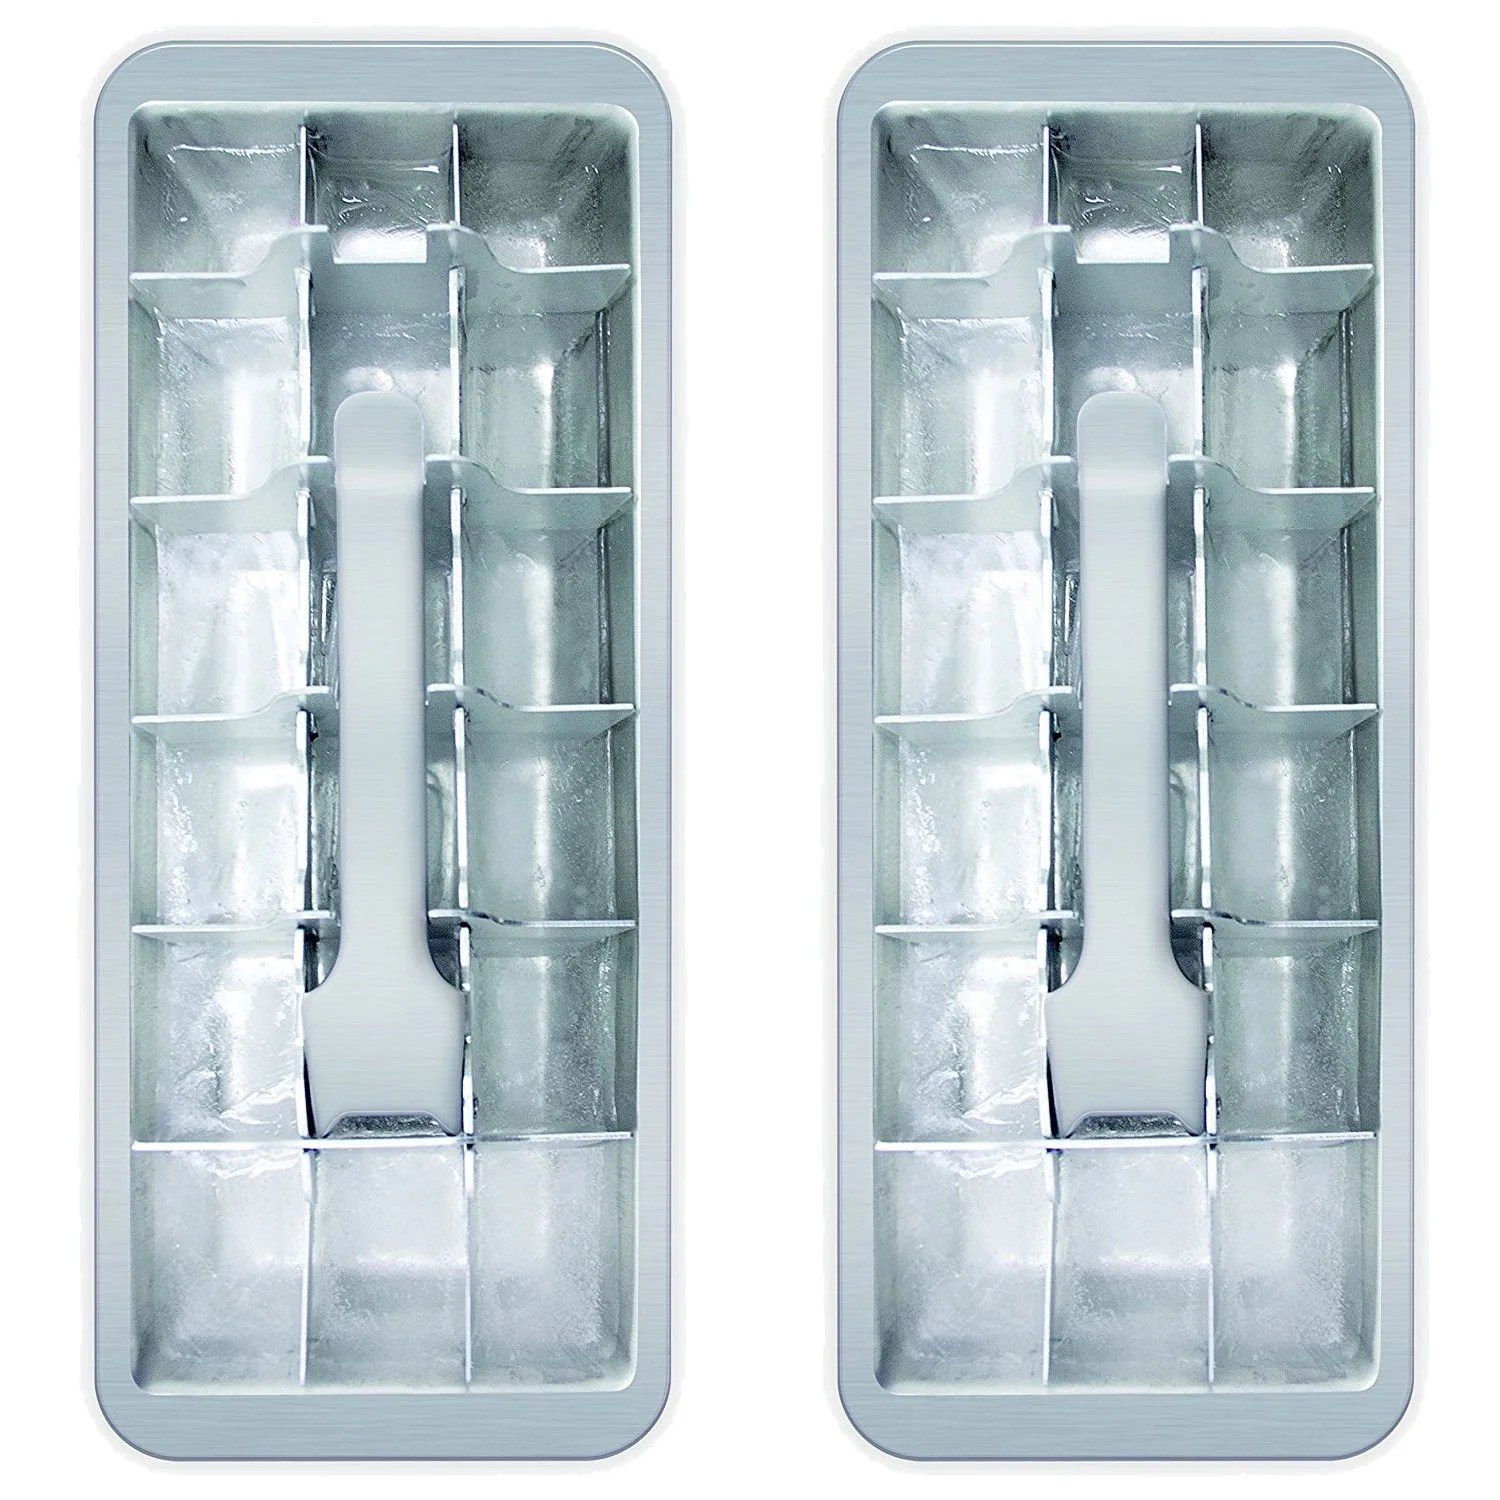 2 Pack Kitchen 18 Cube Vintage Kitchen Ice Cube Tray 2 Pack